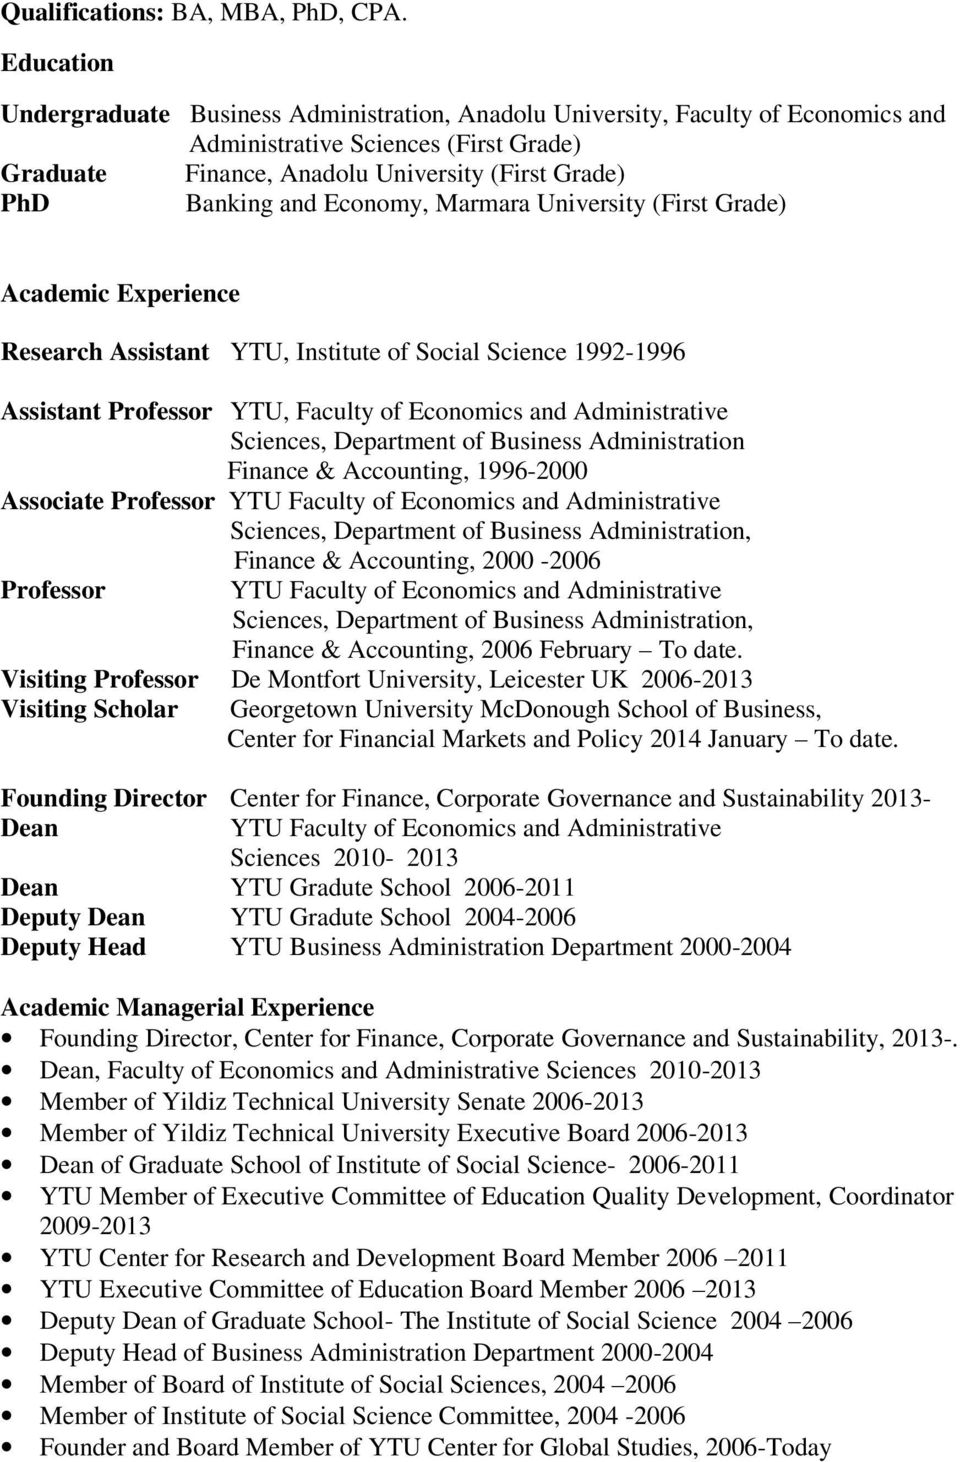 Economy, Marmara University (First Grade) Academic Experience Research Assistant YTU, Institute of Social Science 1992-1996 Assistant Professor YTU, Faculty of Economics and Administrative Sciences,